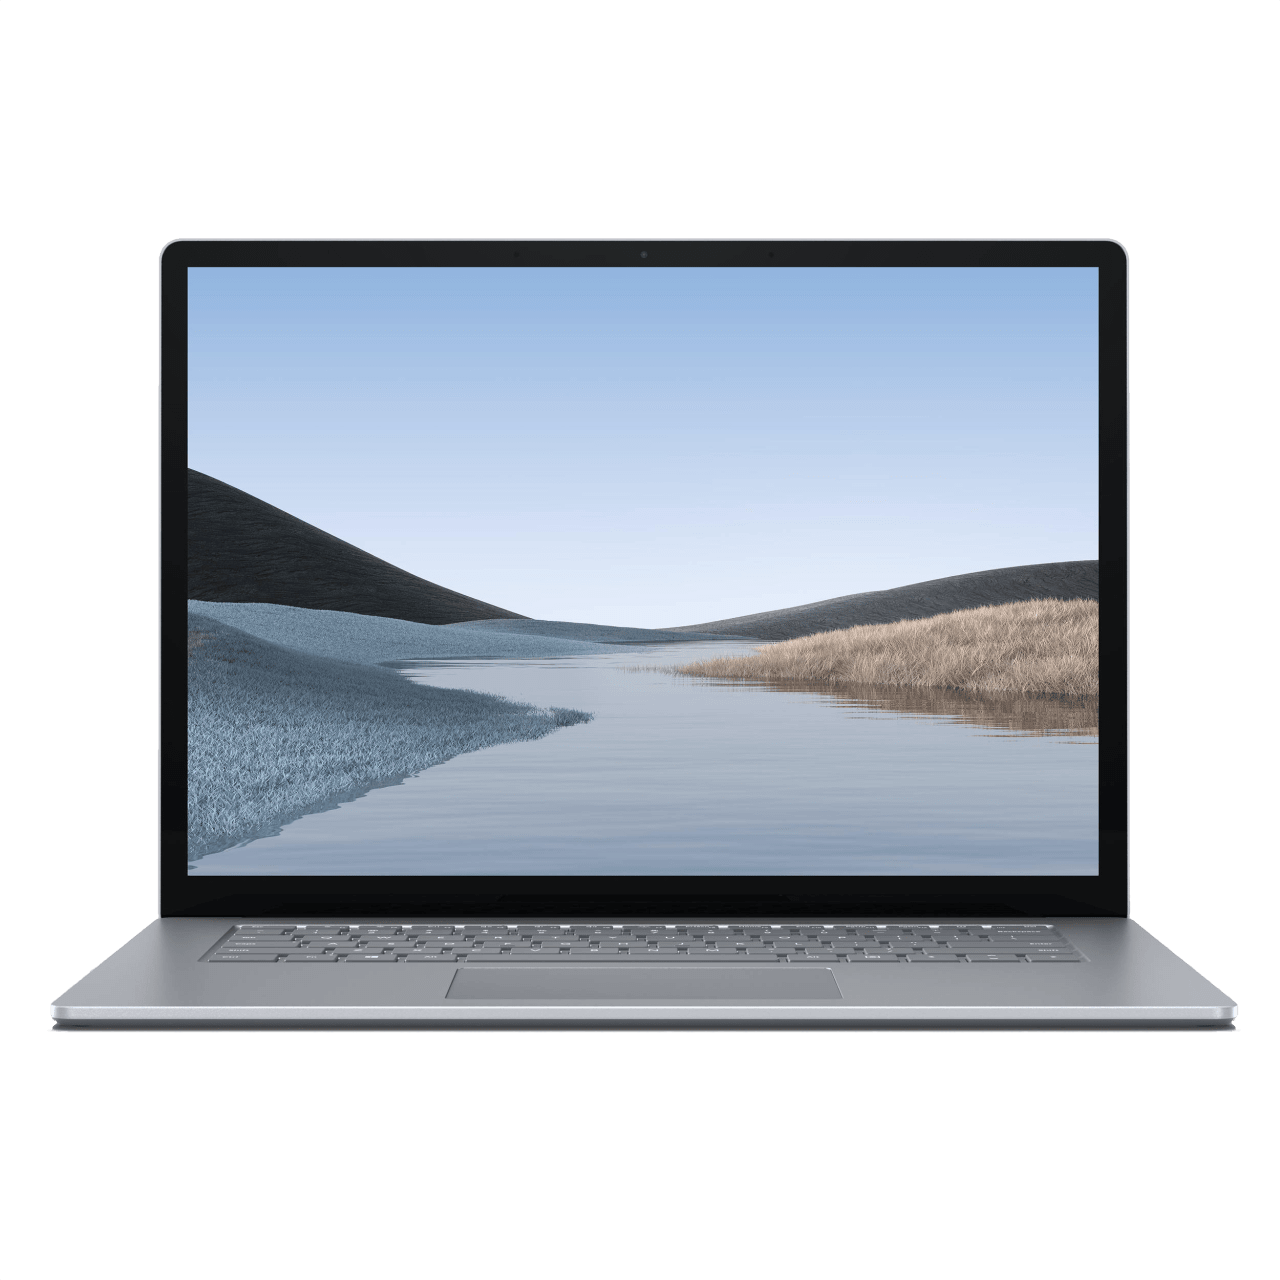 Platinum (Metal) Microsoft Surface Laptop 3.1